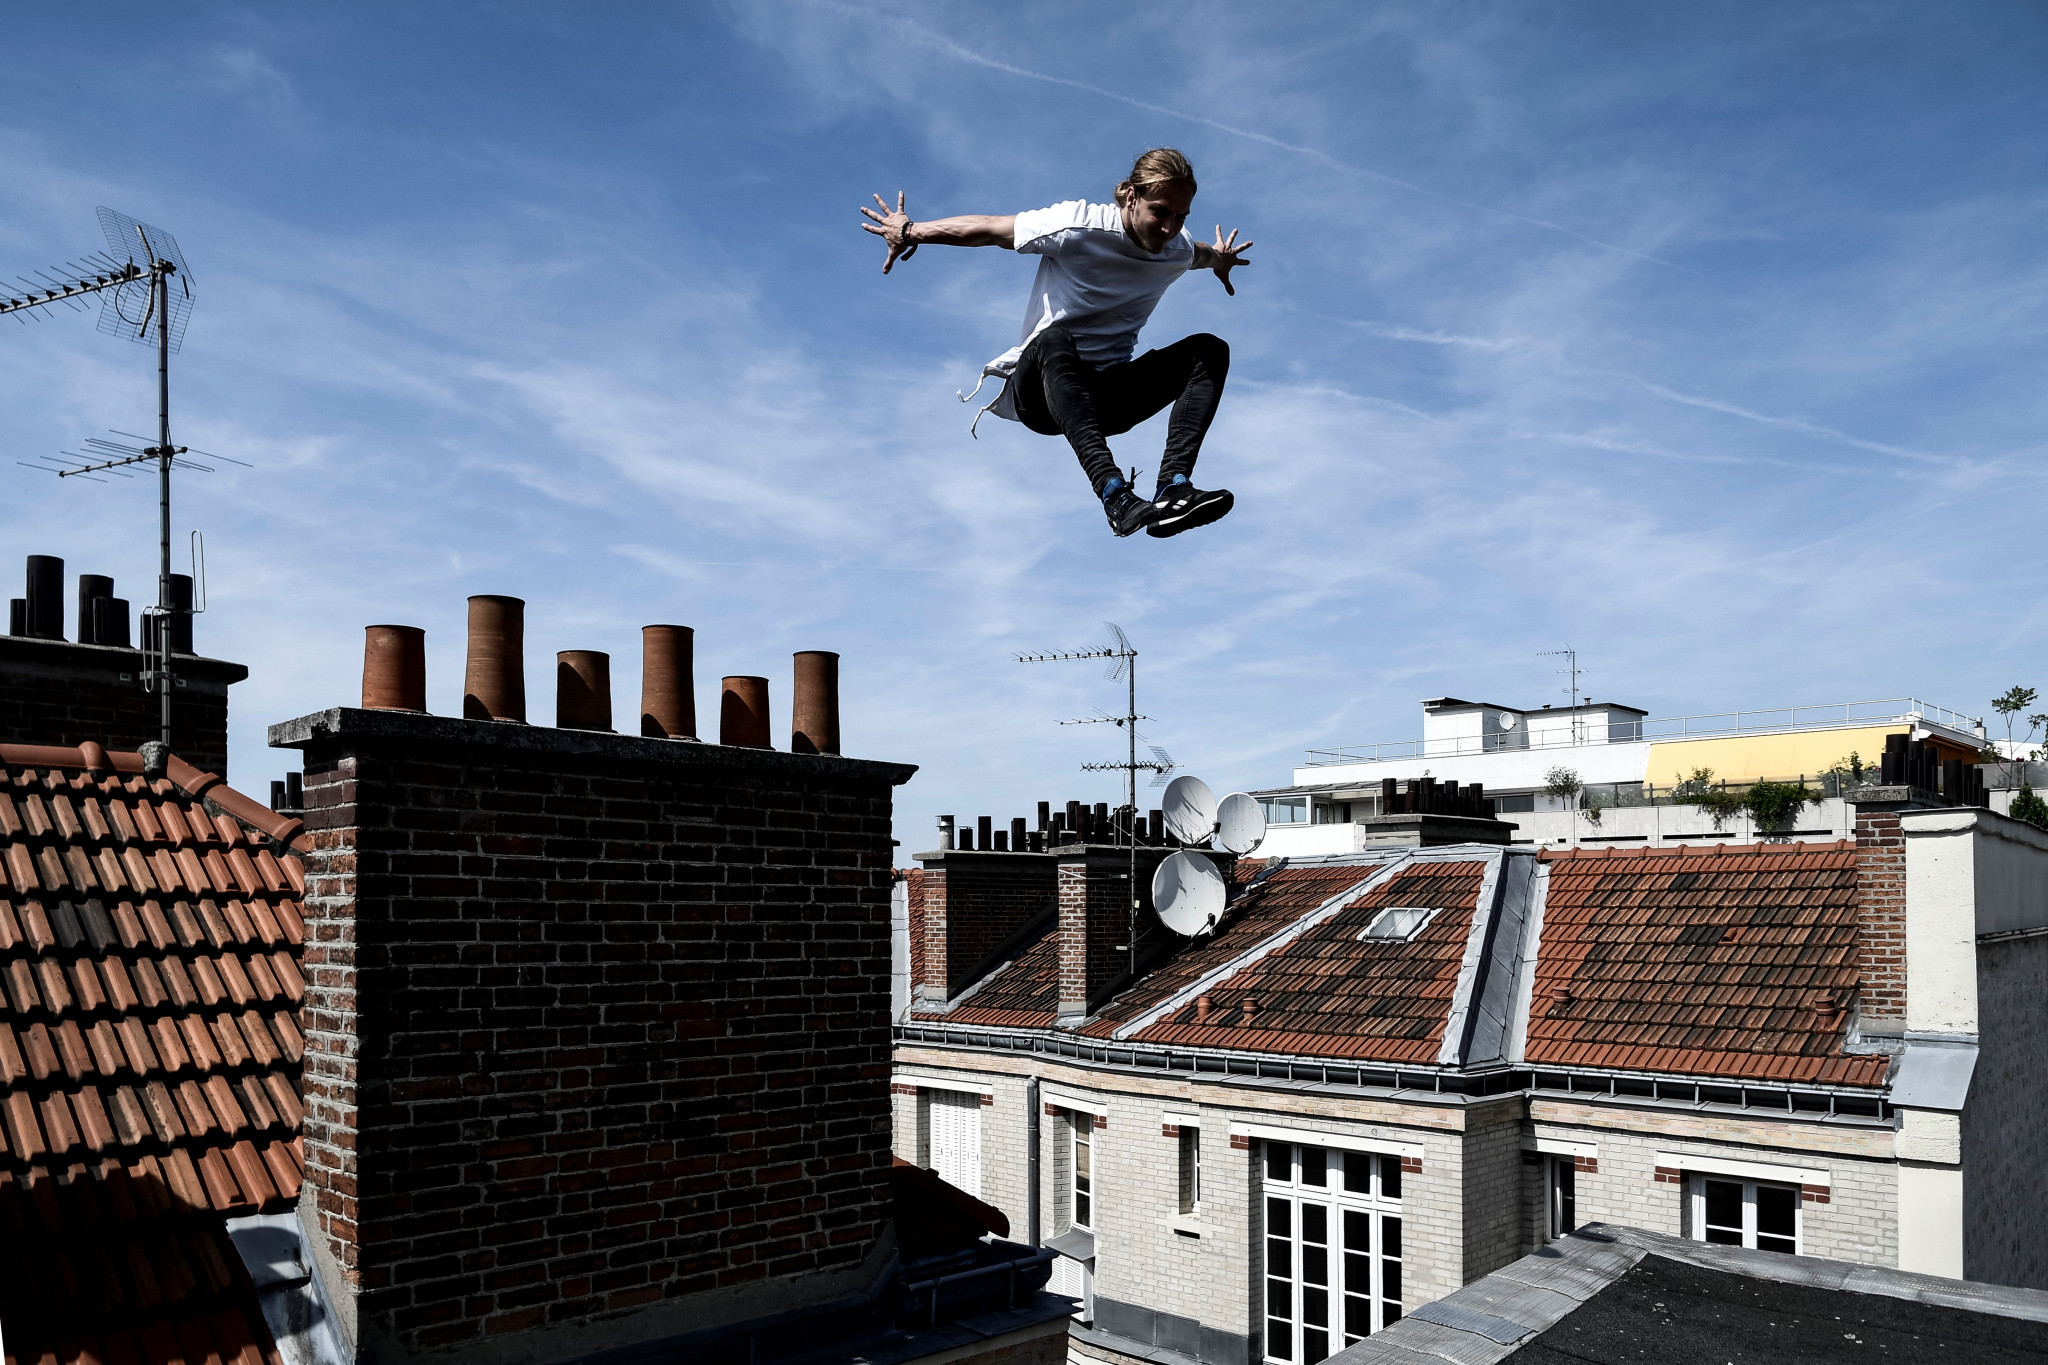 The FIG's move into parkour has been continually criticised by rival groups in the sport ©Getty Images